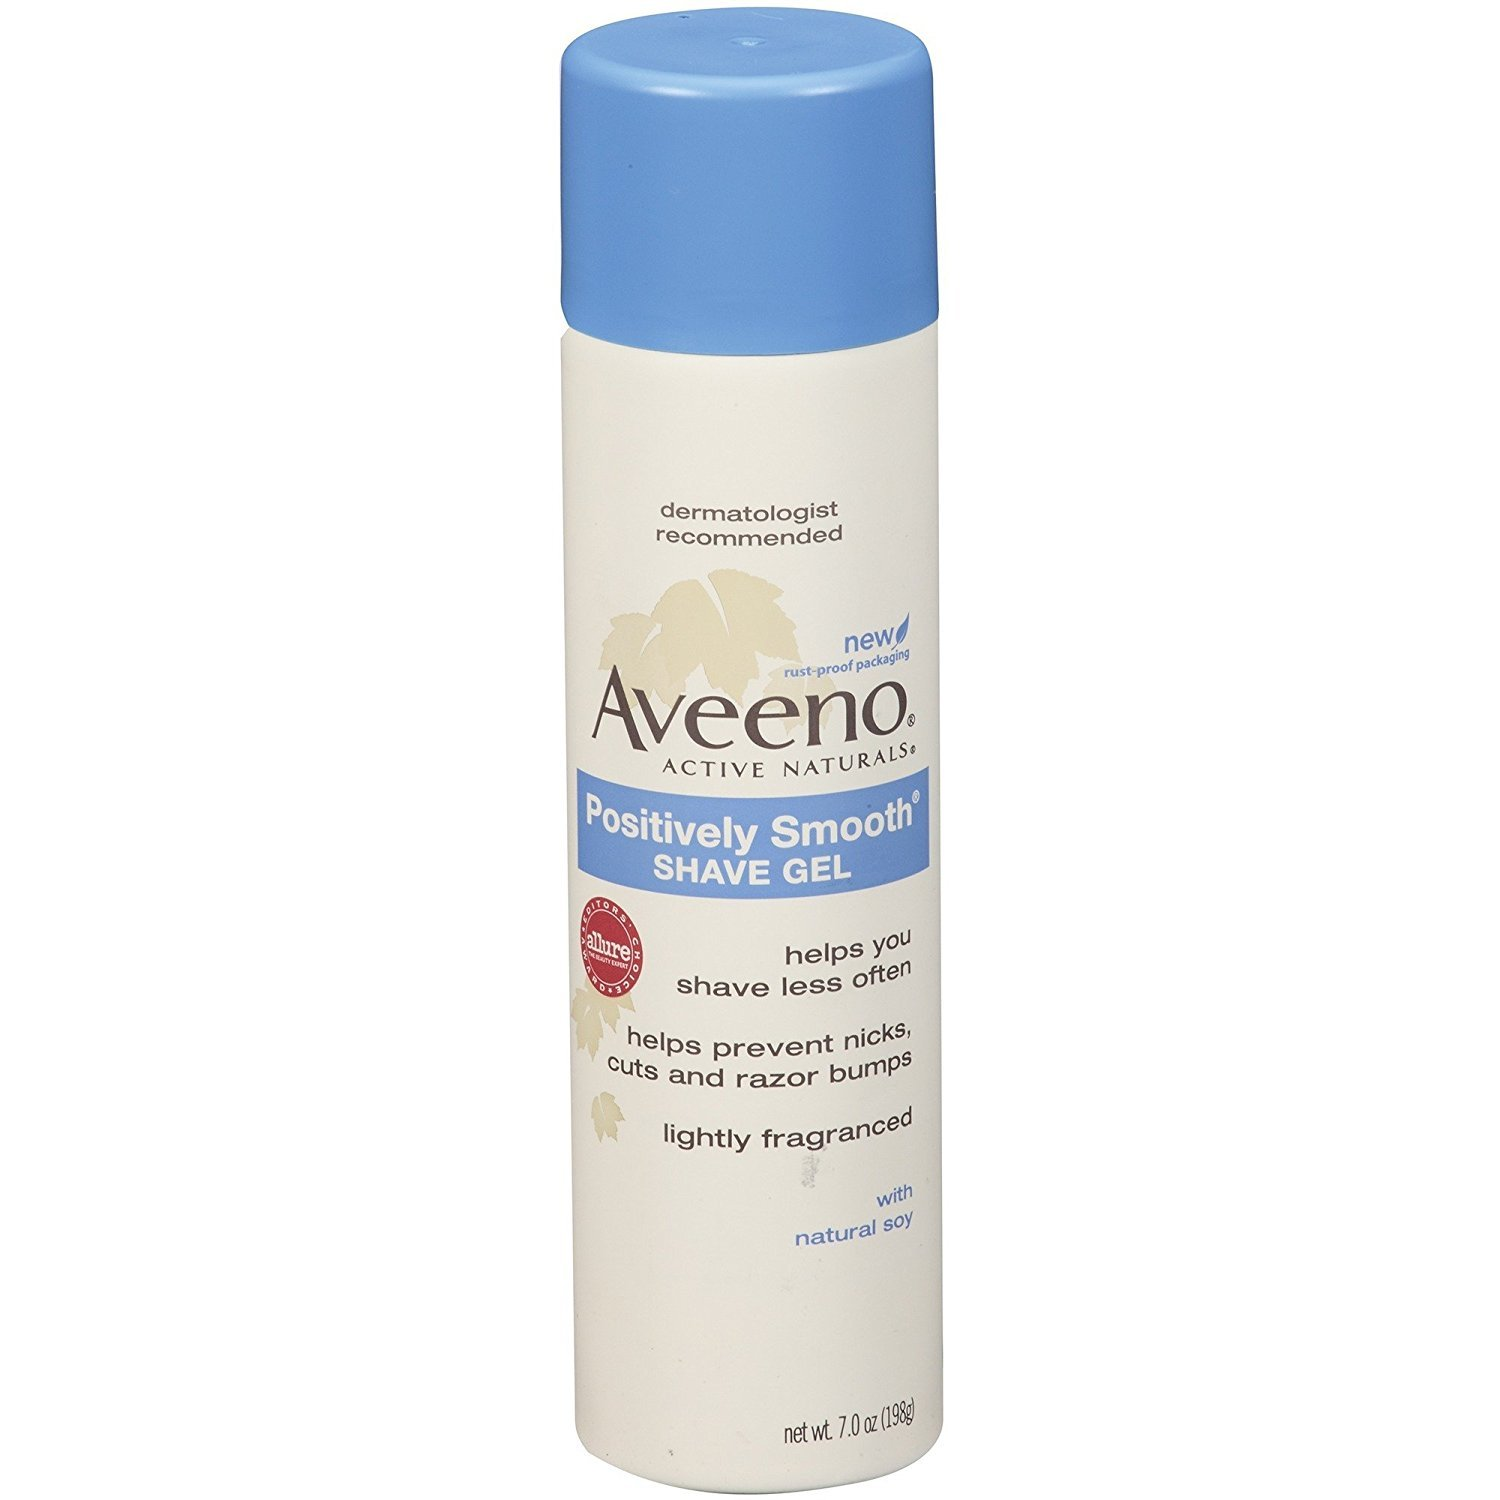 Aveeno Skin Relief Shave Gel nUqBkE, 24 Bottles of 7oz by Aveeno